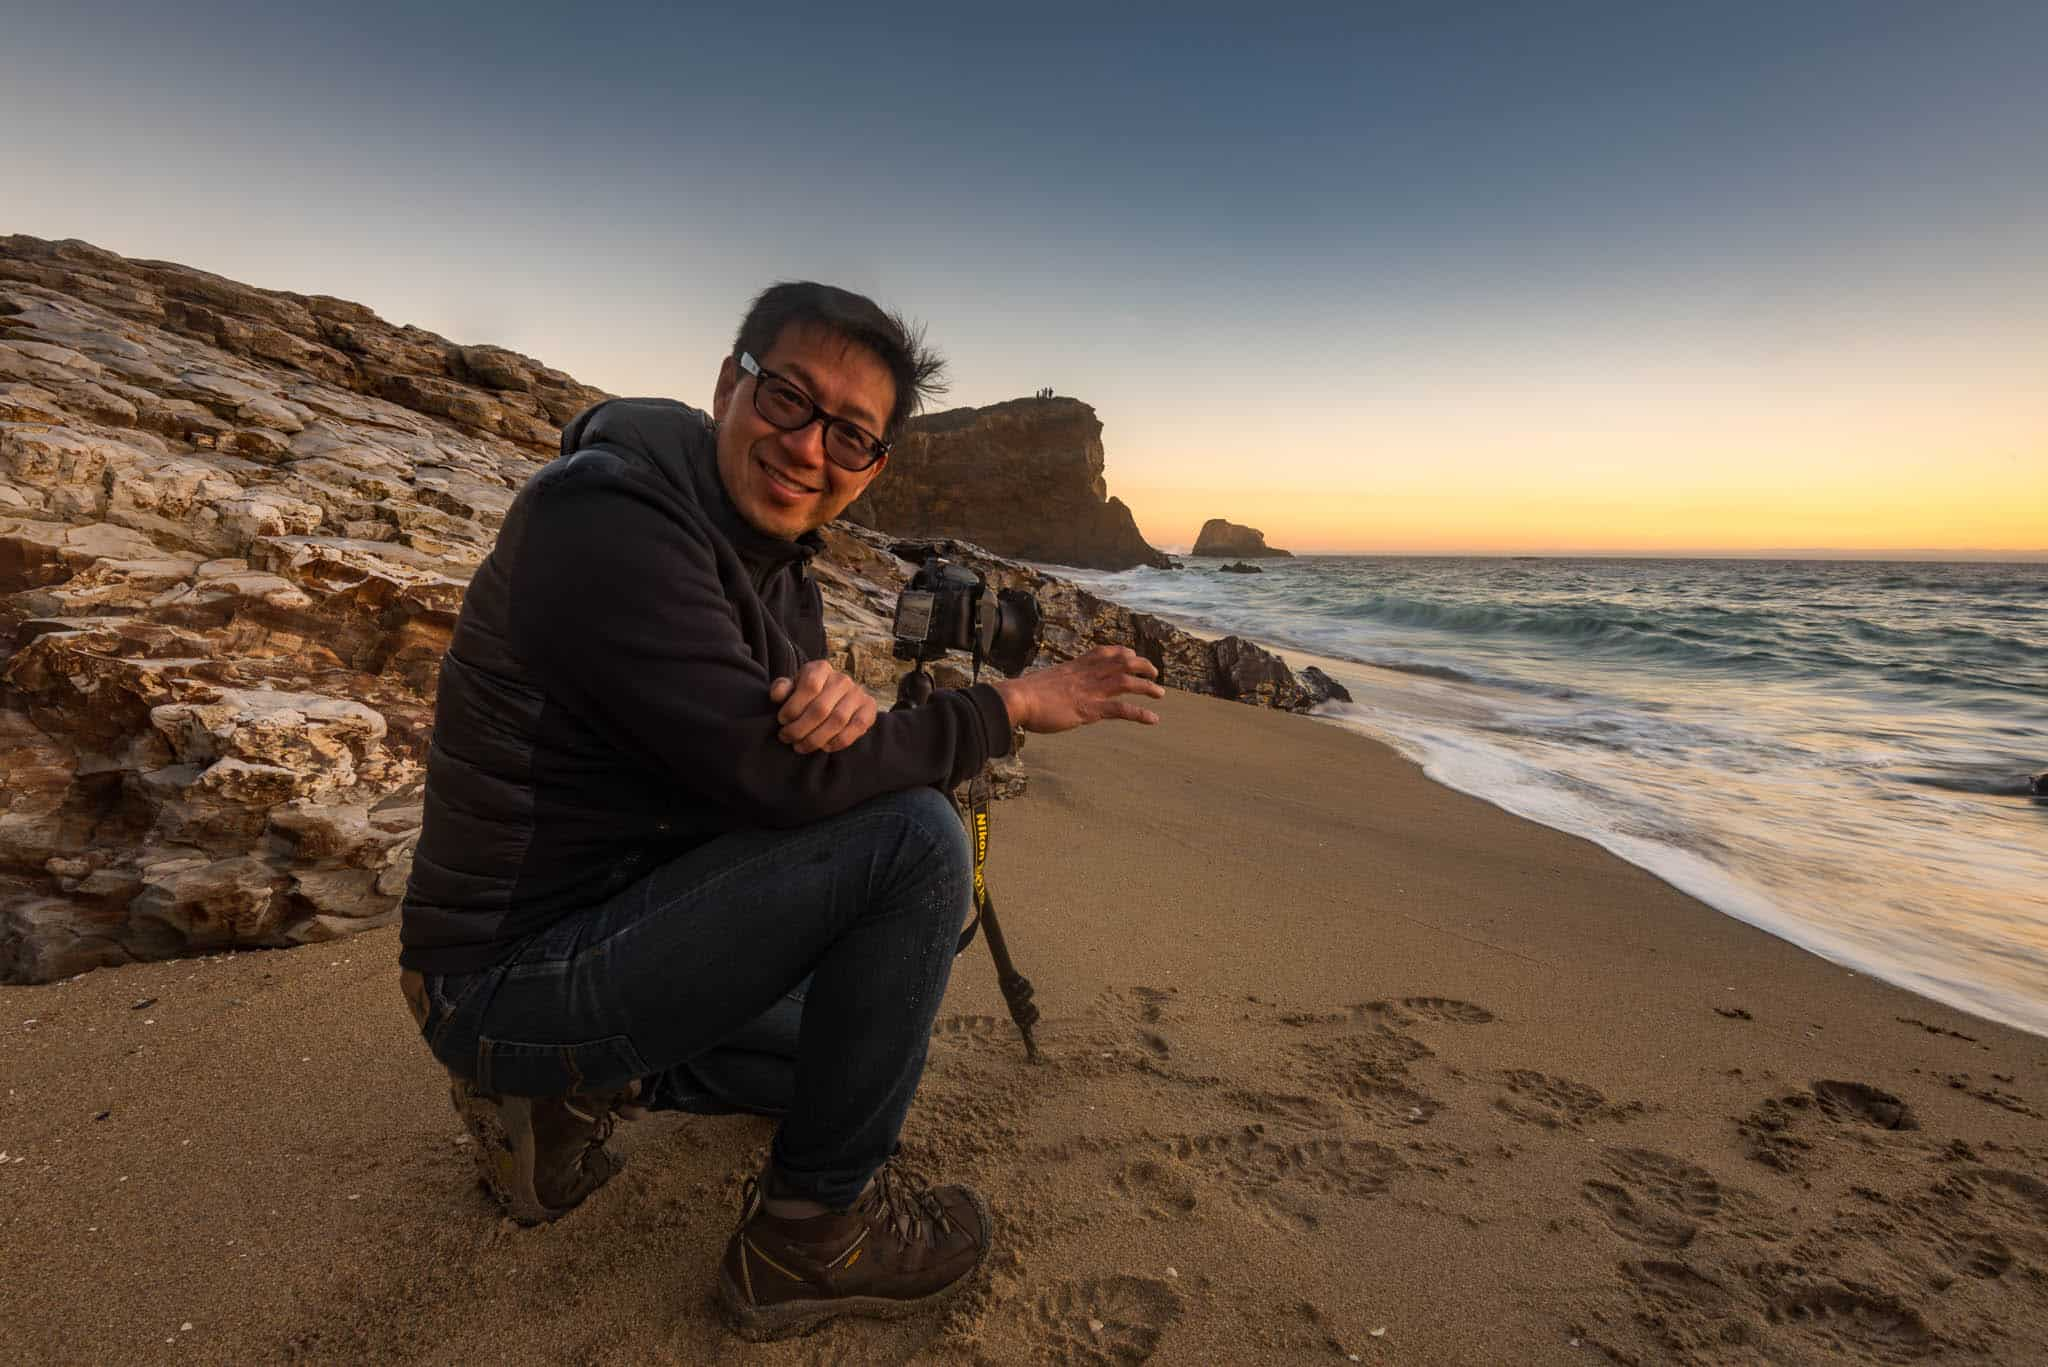 photographer on California coast beach taking photos